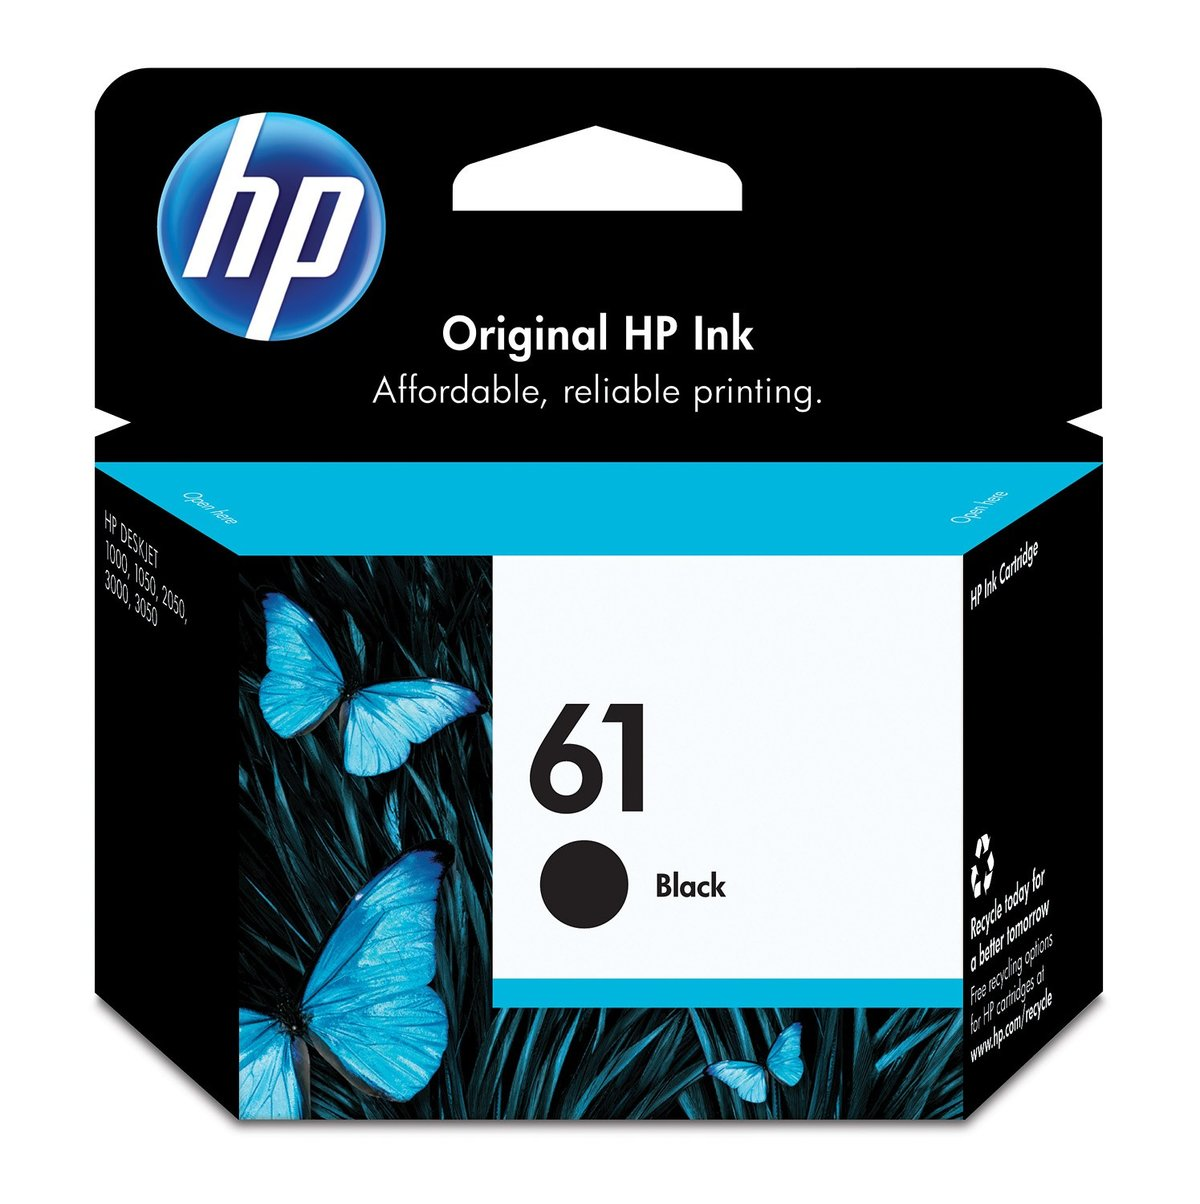 HP 61 Black Ink Cartridge (CH561WN) | Staples